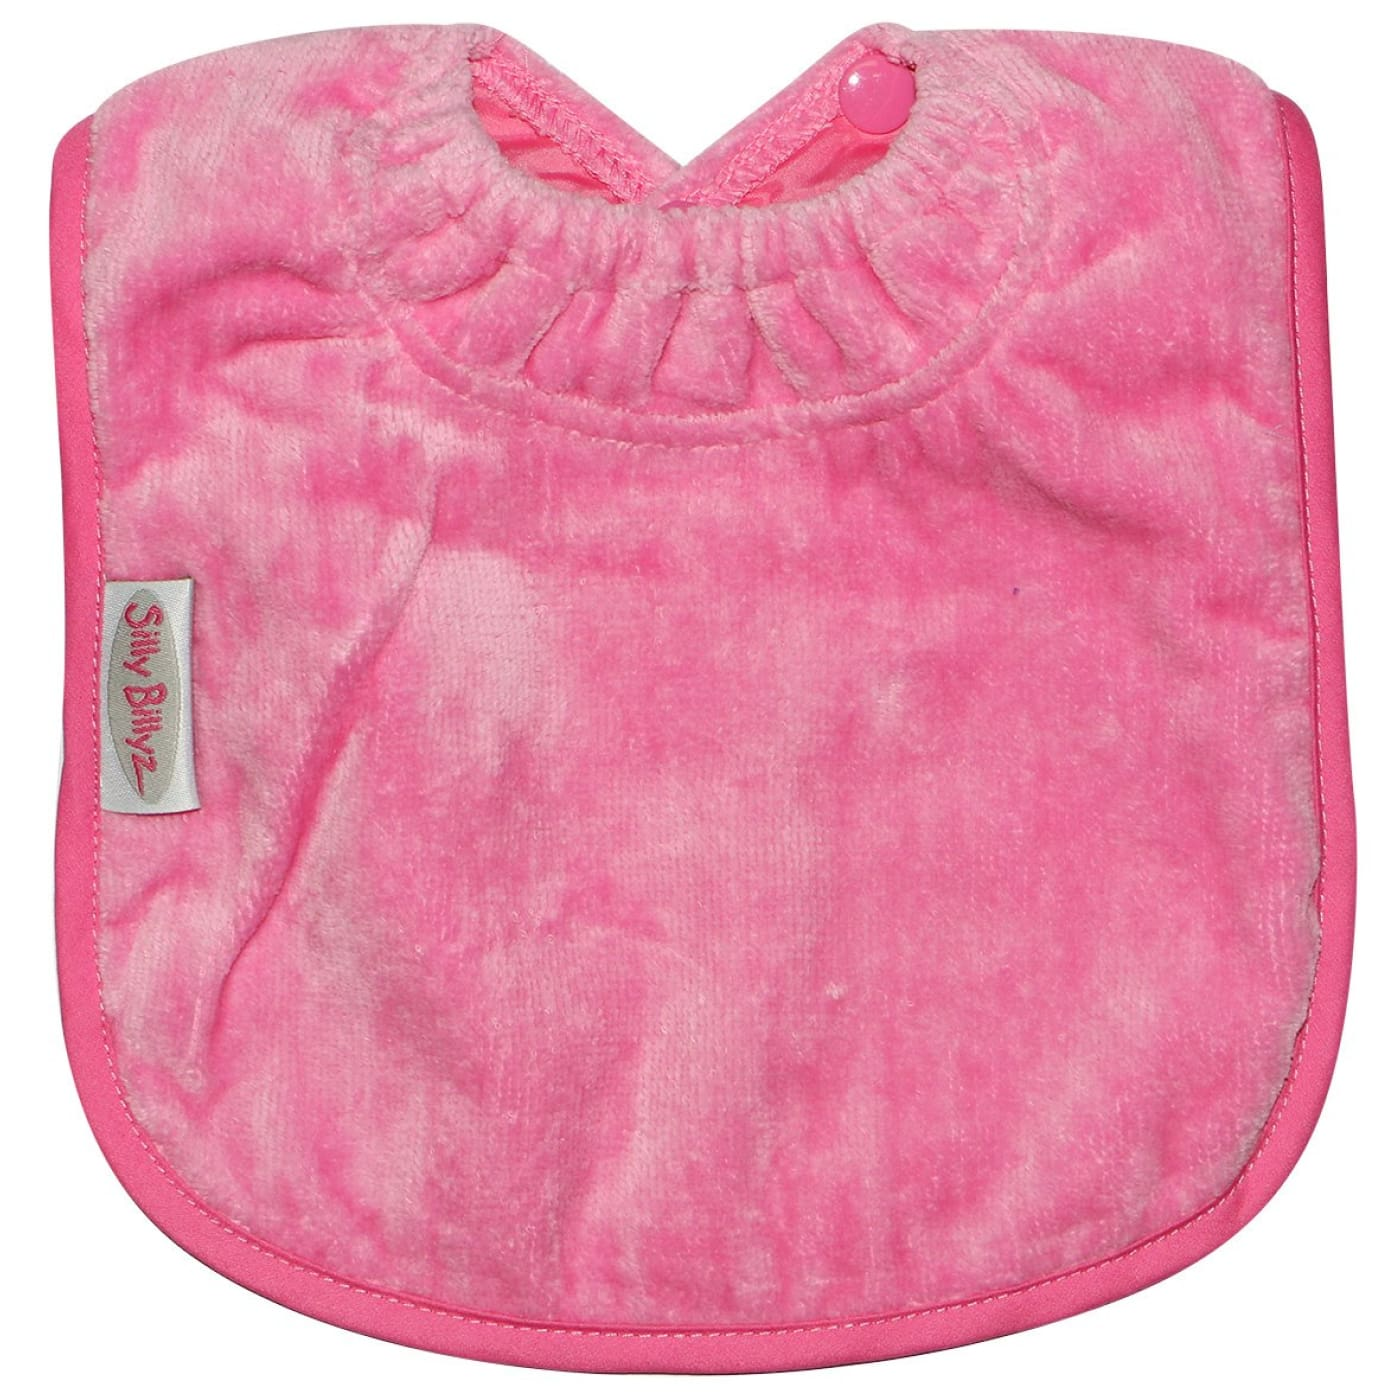 Silly Billyz Towel Plain Large Bib - Cerise - NURSING & FEEDING - BIBS/BURP CLOTHS